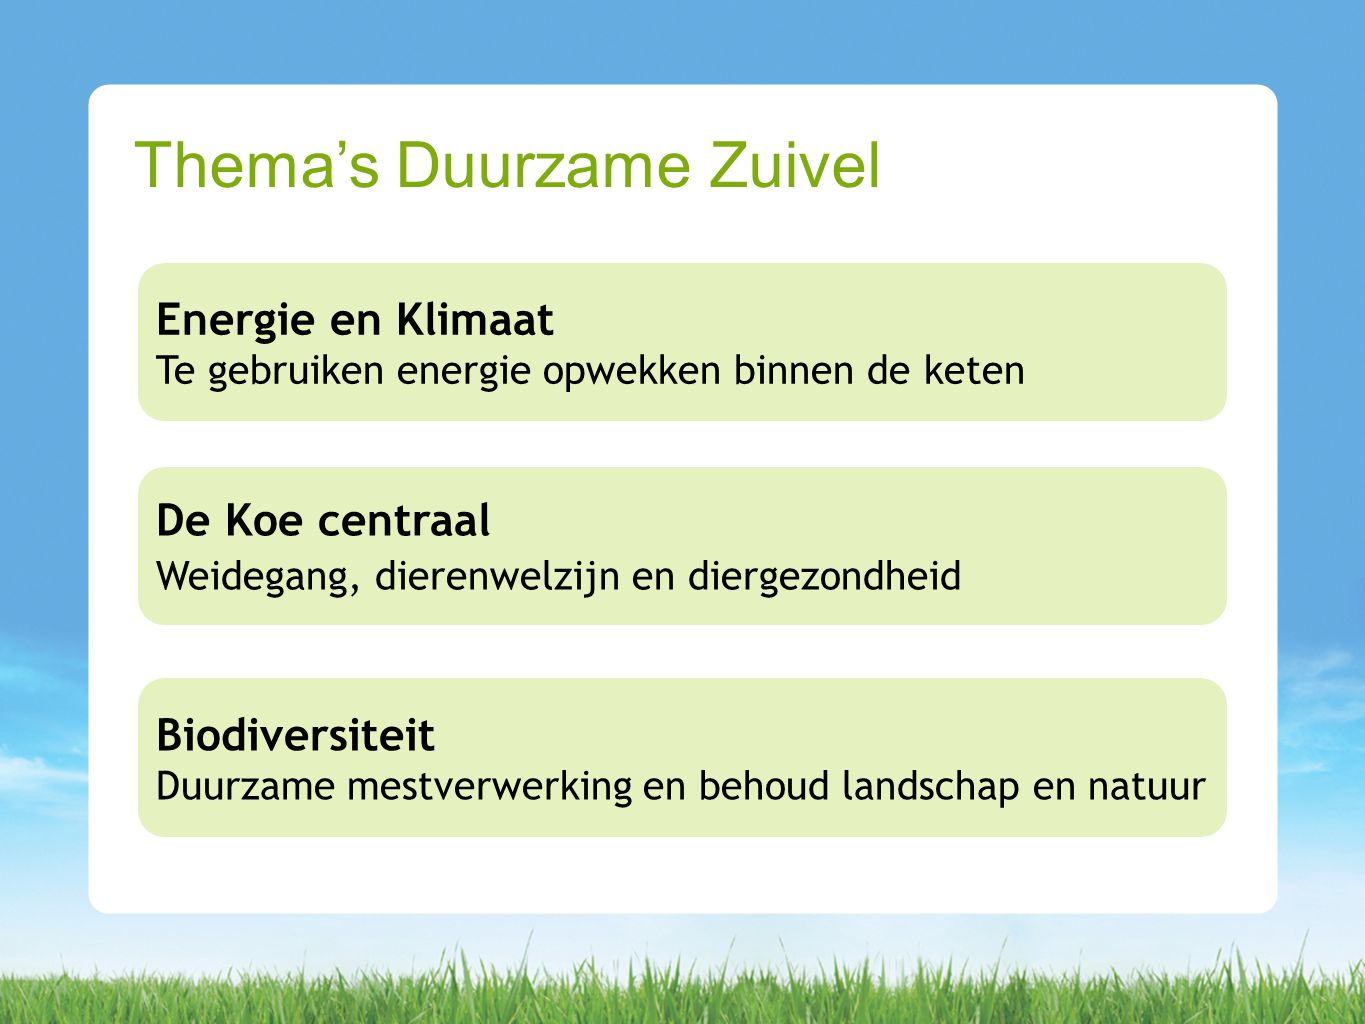 Thema's Duurzame Zuivel